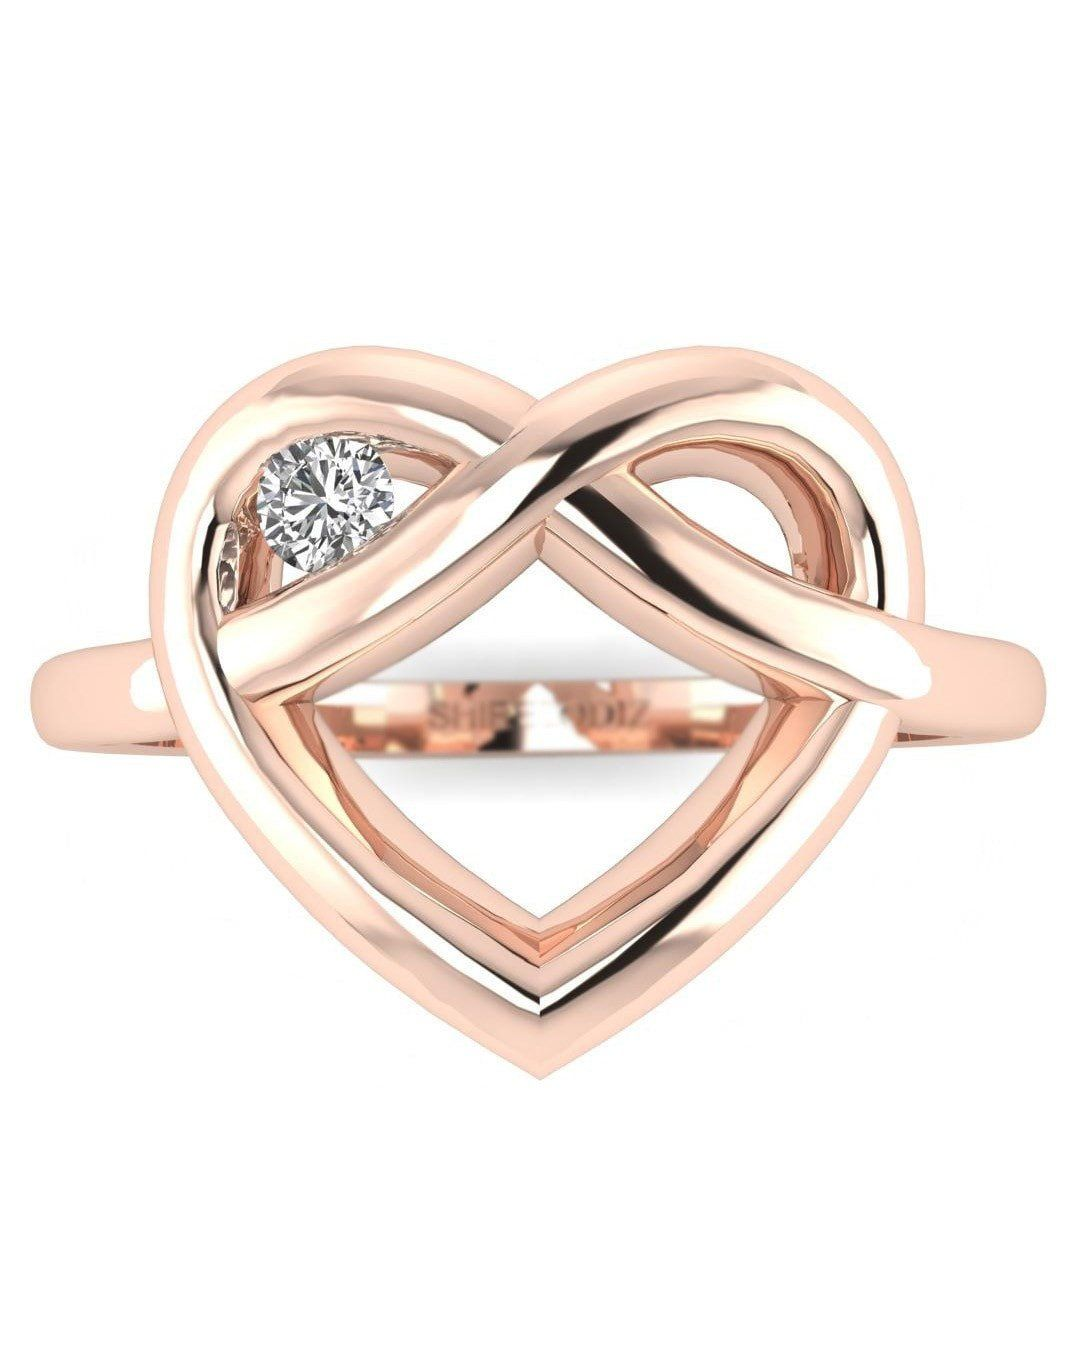 a7622145ea Rose Gold Real Diamond Ring - Winking Heart | Products | Diamond ...